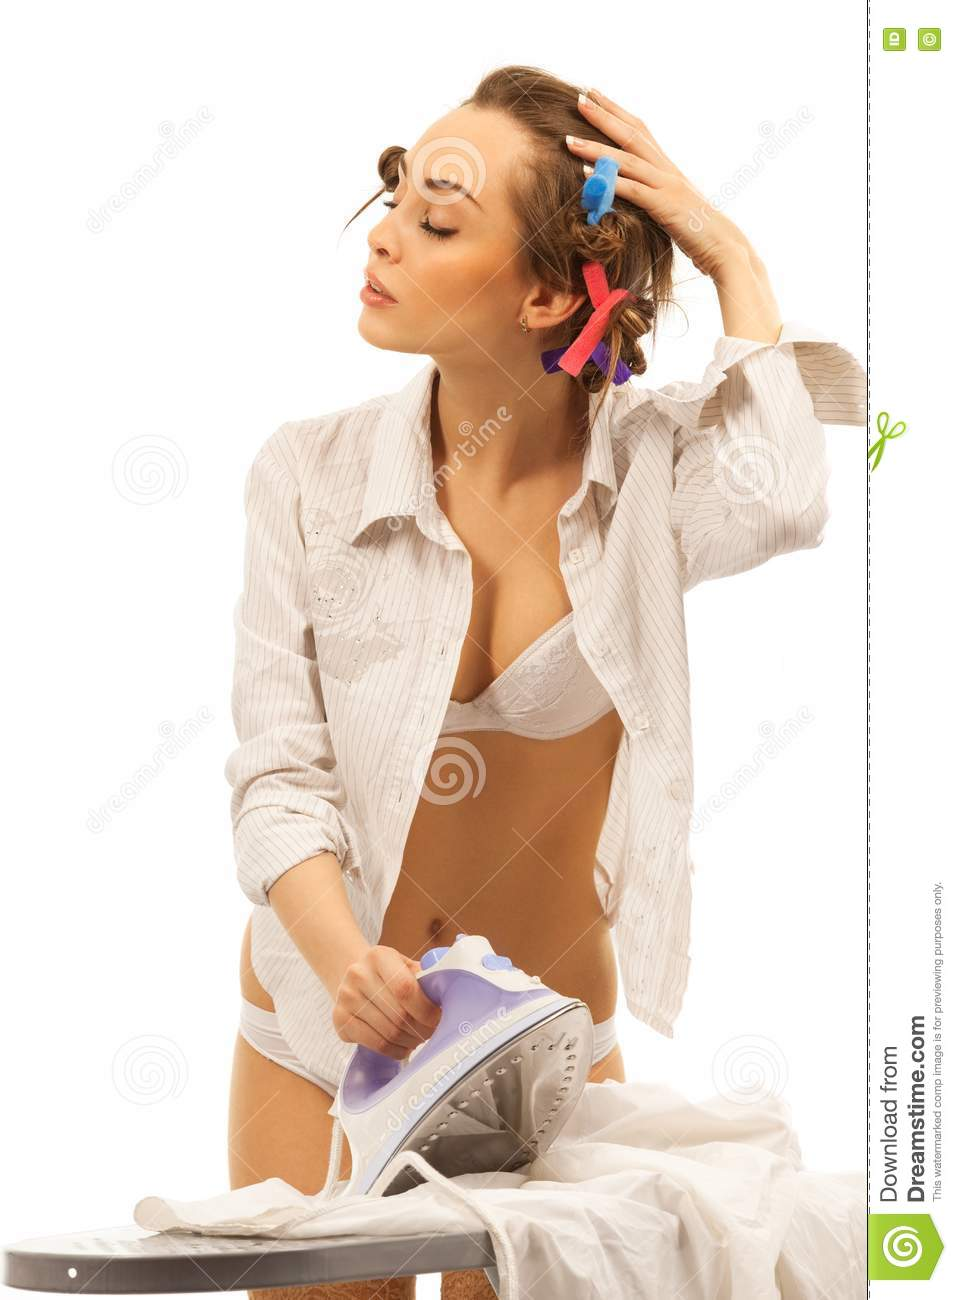 Young beautiful sexy woman ironing clothes against bright background